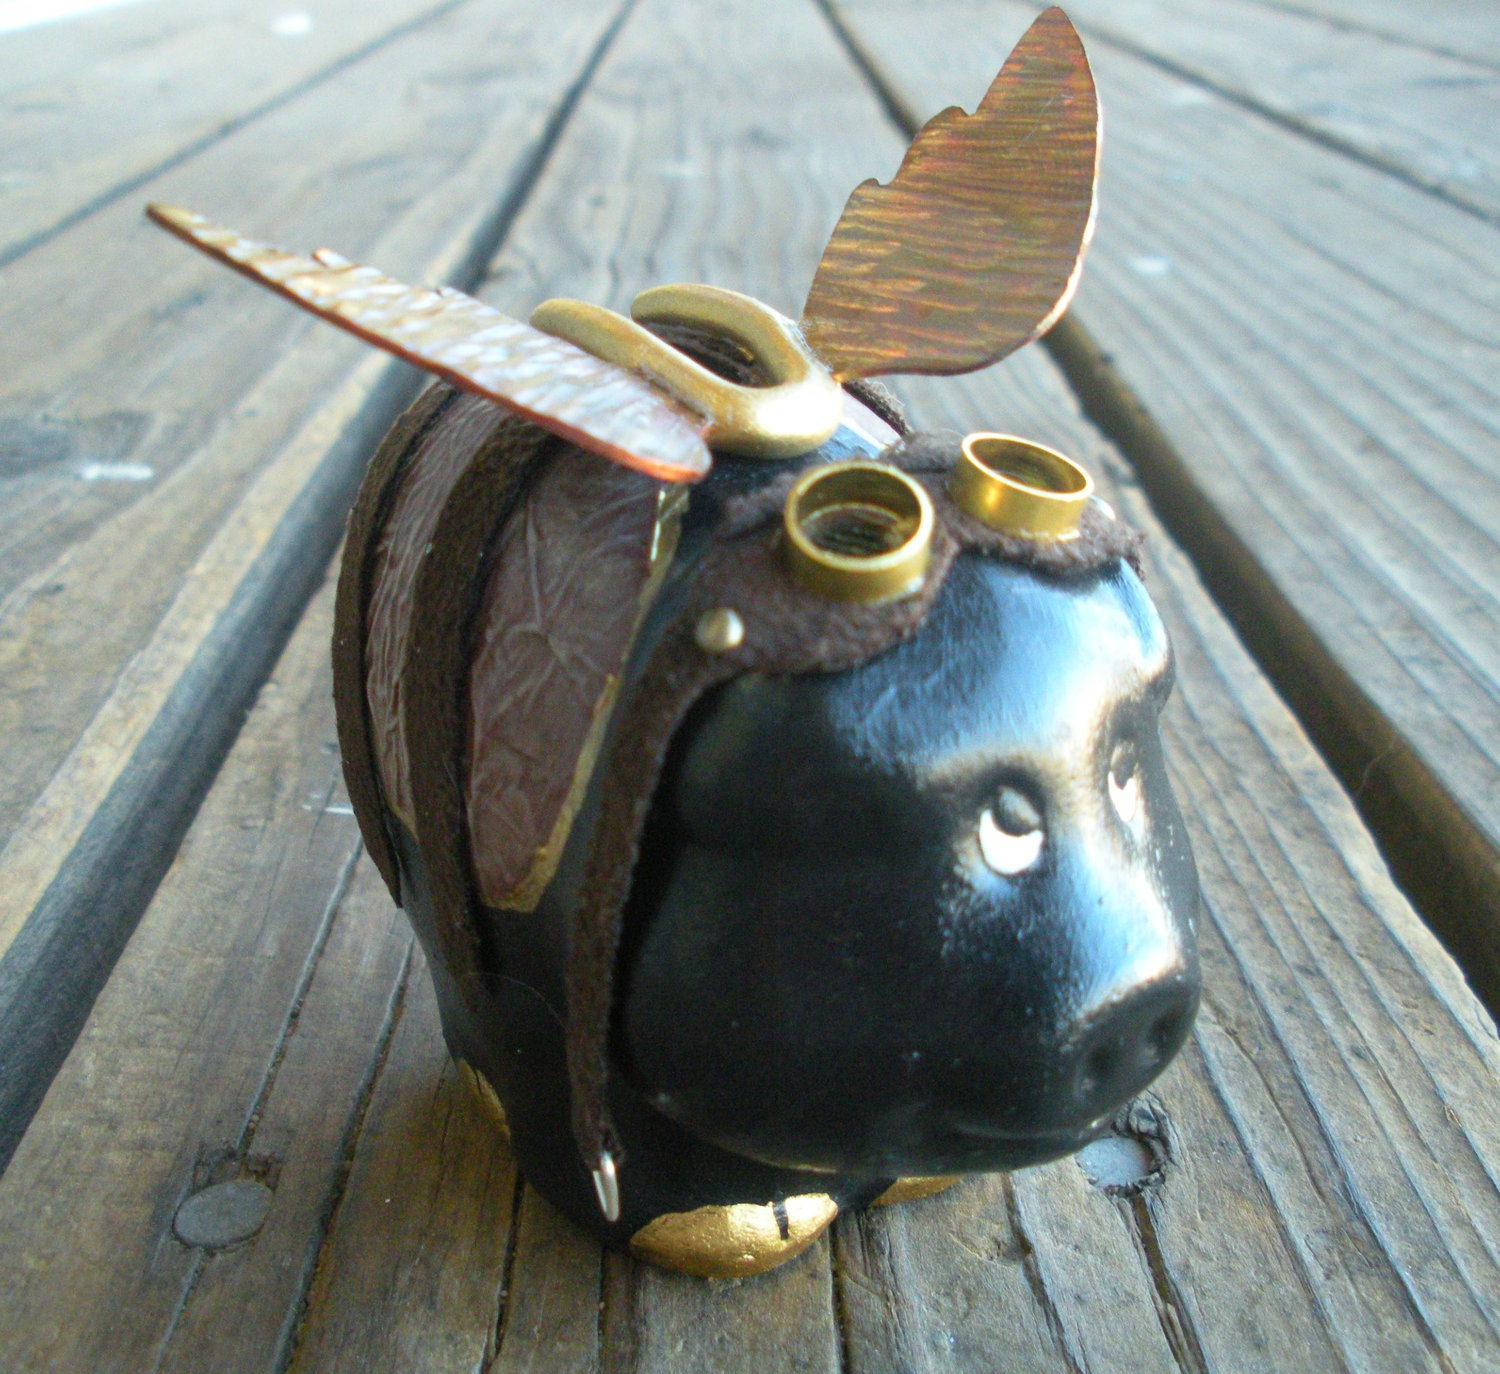 Steampunk Style Flying Pig Piggy Bank By Turtleshell03 On Etsy